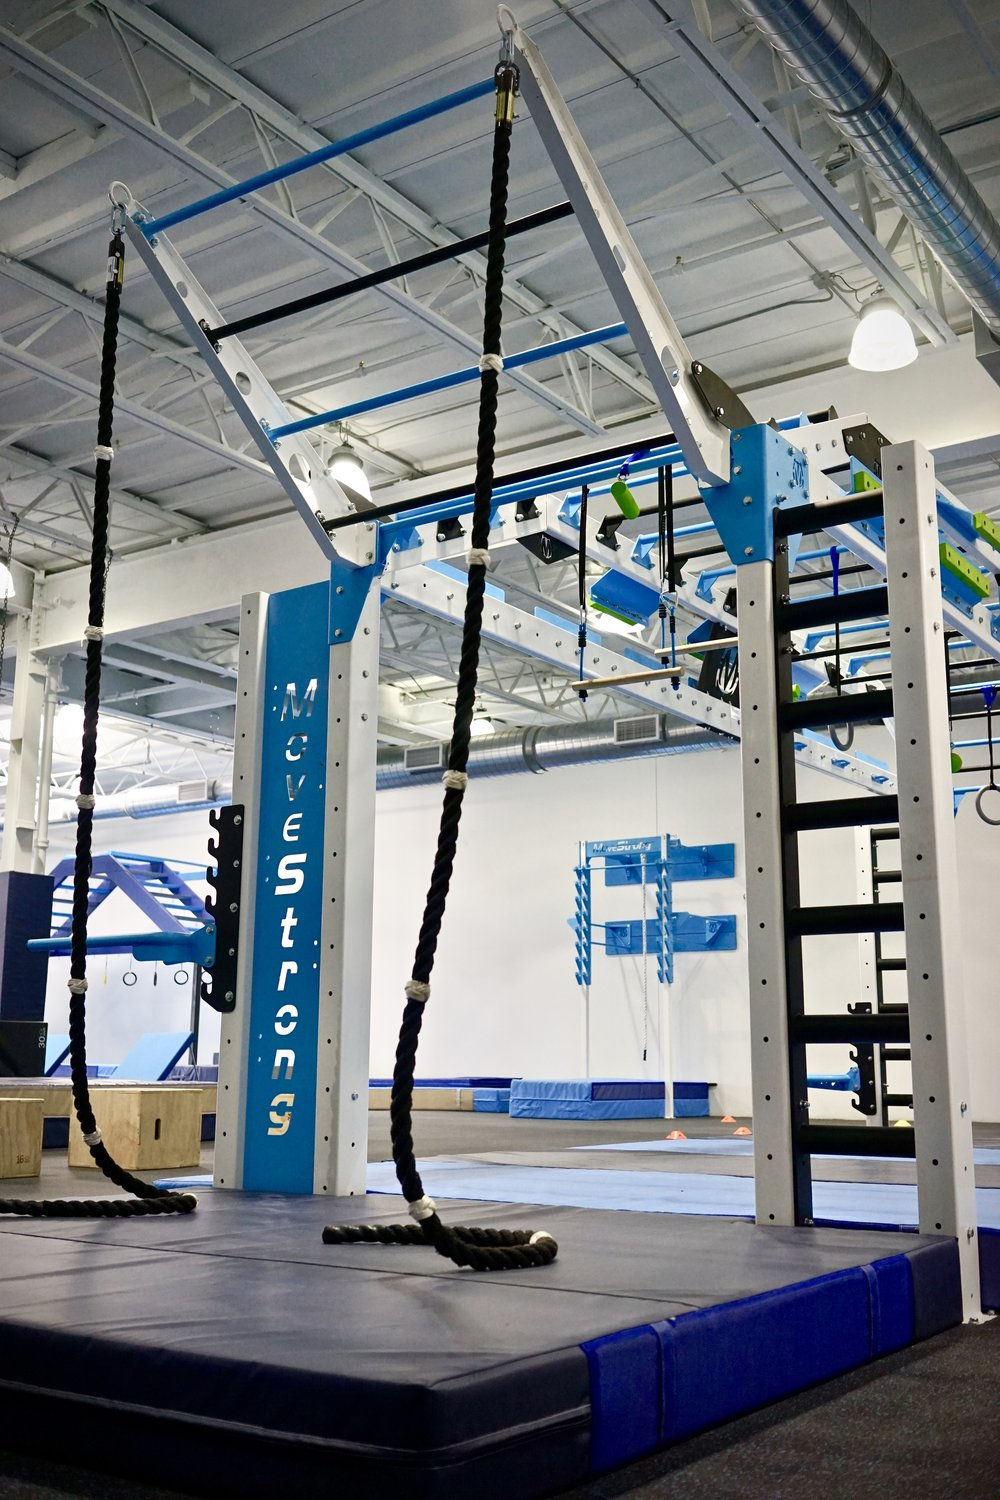 Climber bar with Rope Climb stations